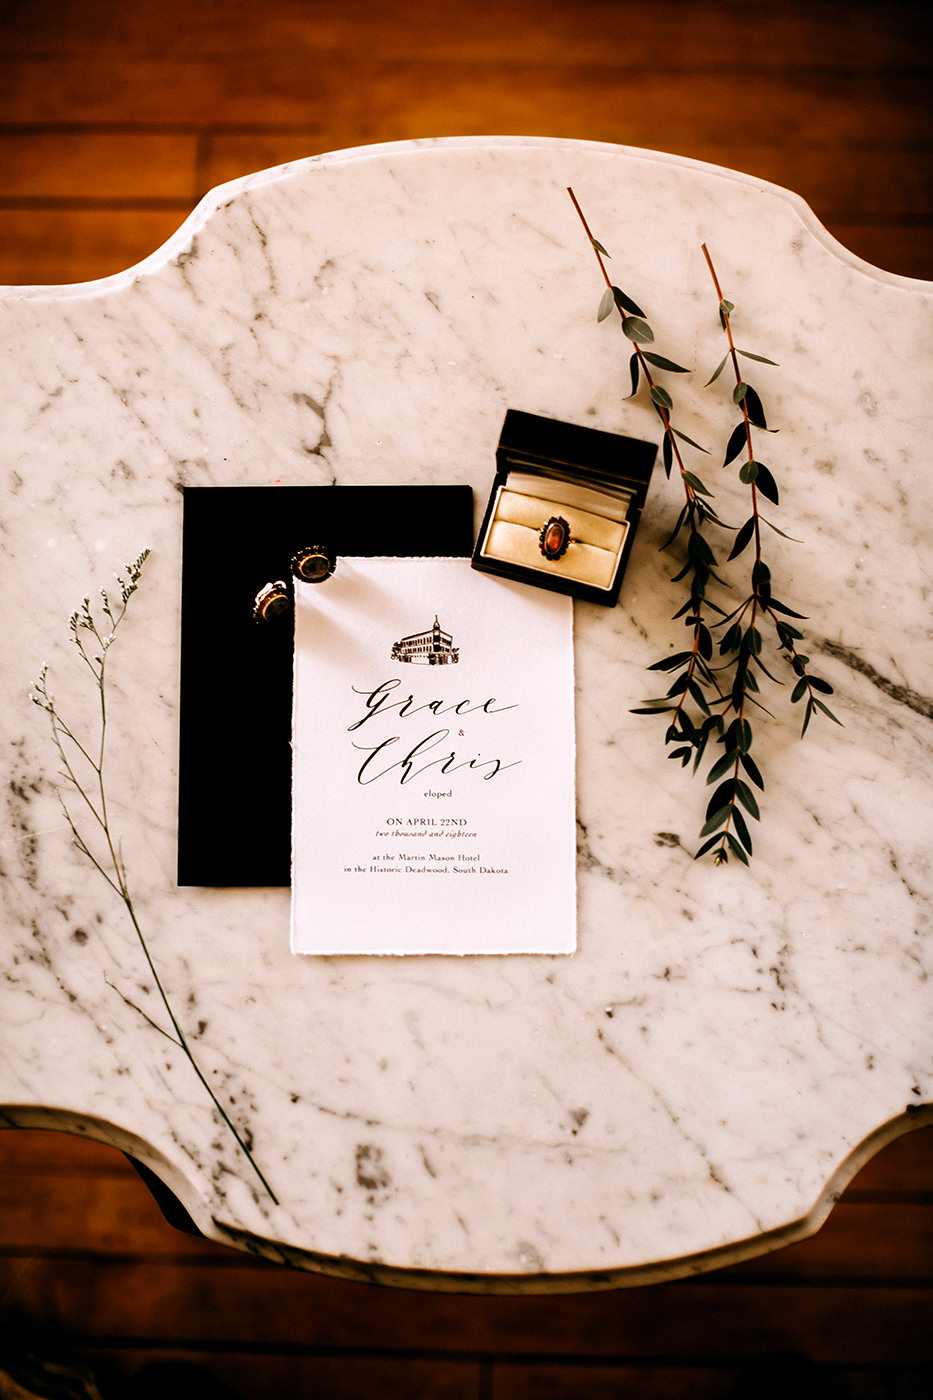 Liz Osban Photography Wedding Elopement Eloped engaged engagement couples session photographer deadwood south dakota wyoming beautiful vintage moody colorado mountains vintage best vintage lease martin mason hotel 4.jpg